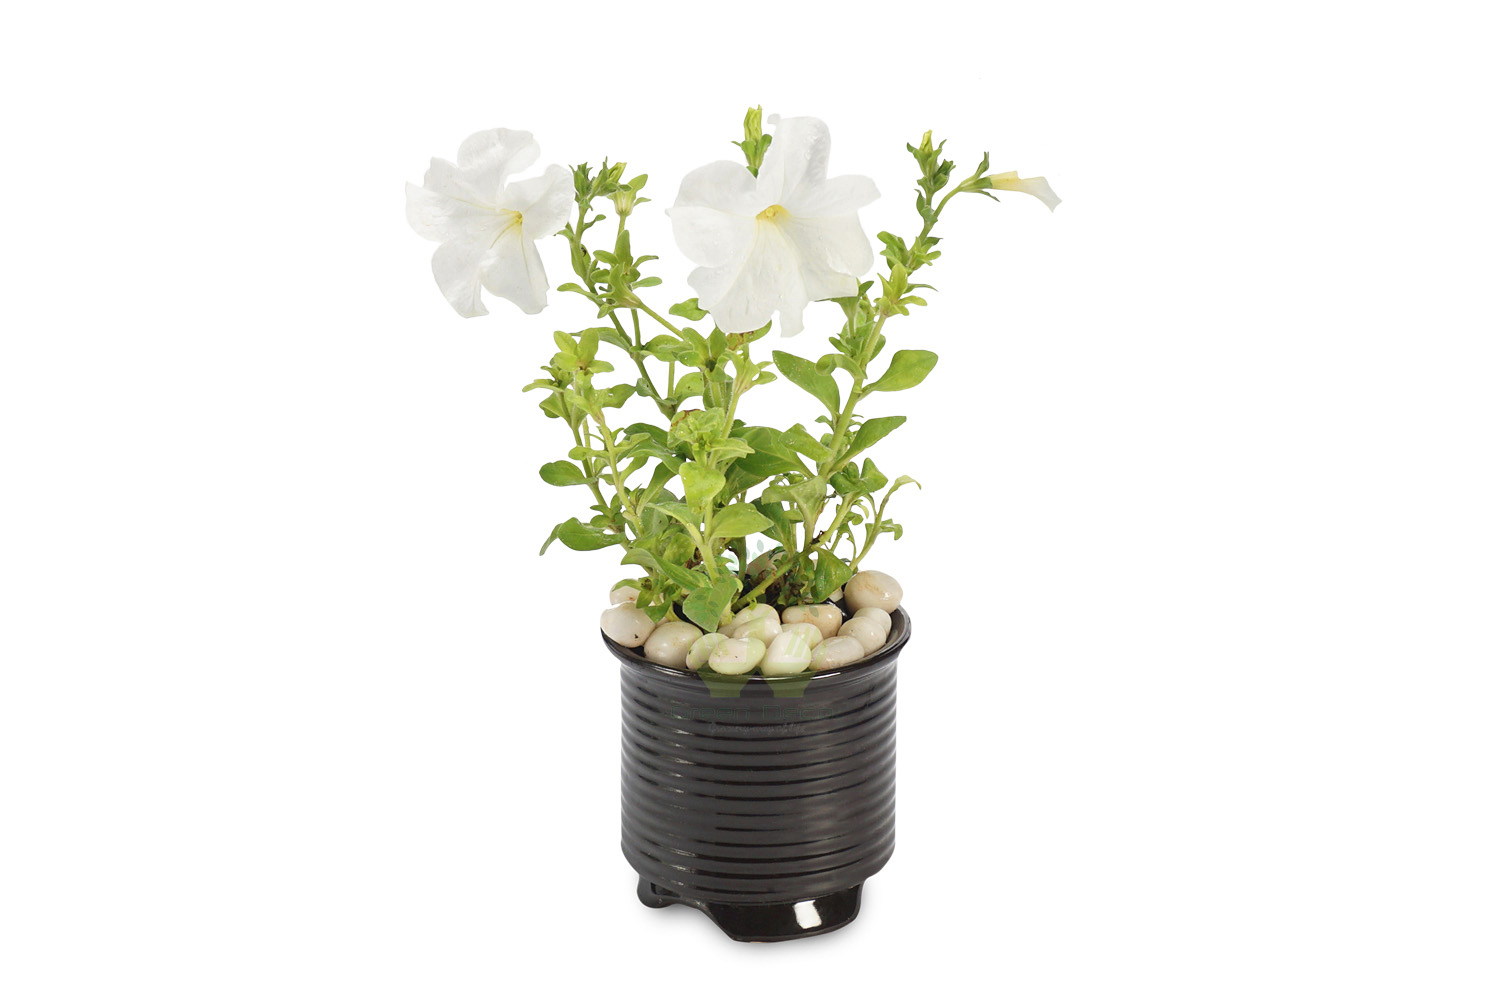 Buy Petunia White Plant Front View, White Pots and Seeds in Delhi NCR by the best online nursery shop Greendecor.